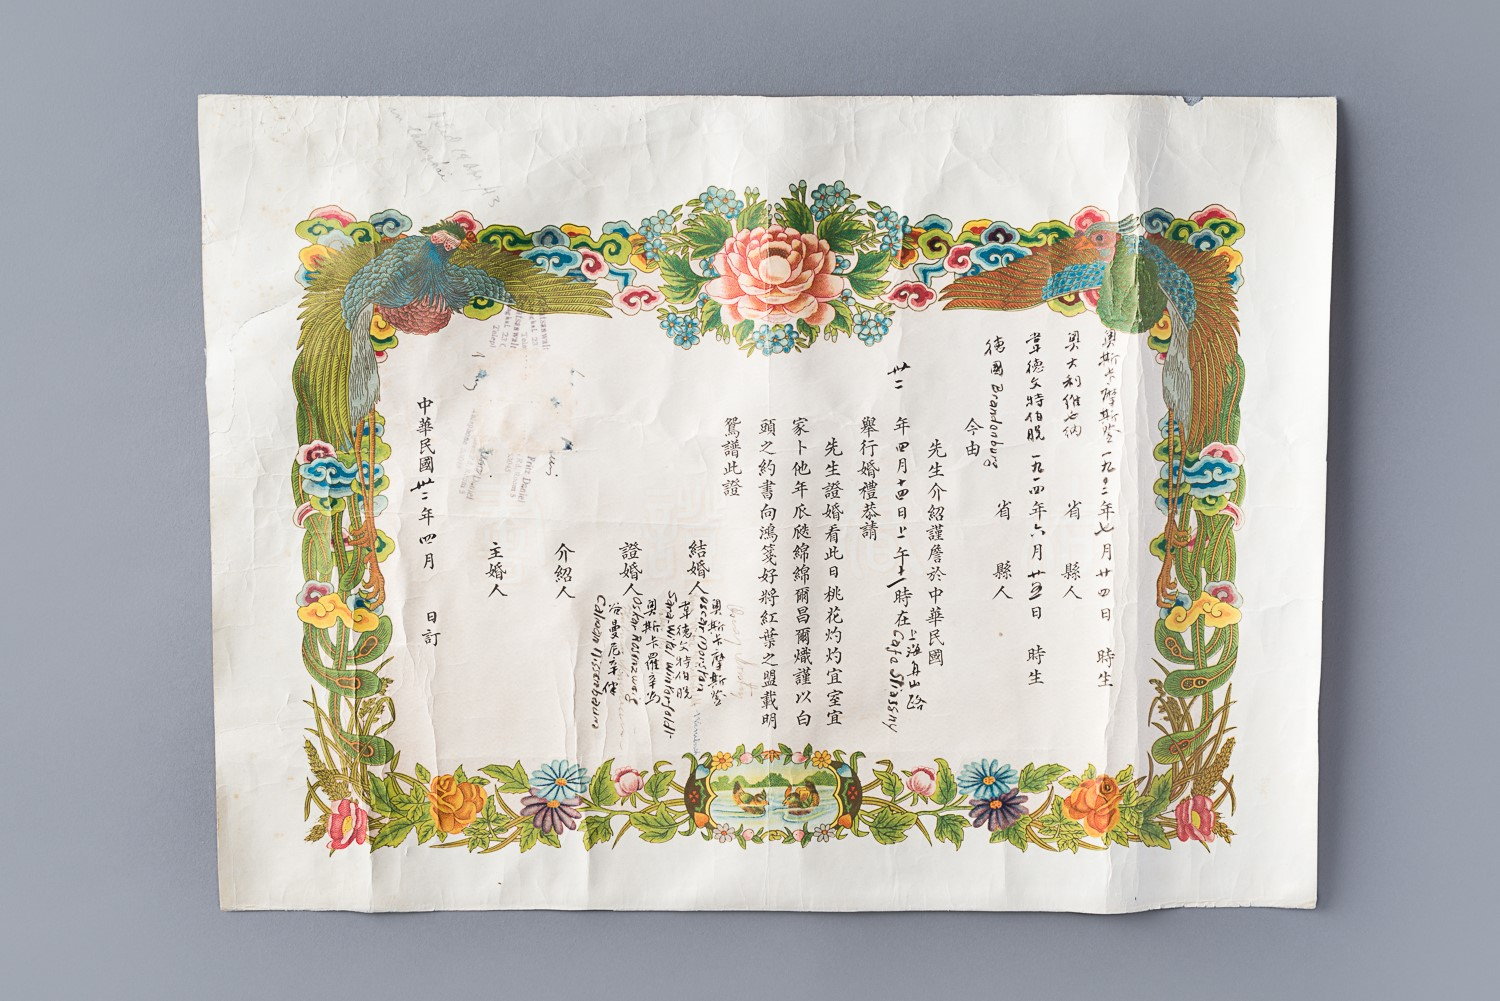 This marriage certificate belonged to Sara Witel Winterfeldt and Oscar Morsten. They married in Shanghai on April 14, 1943.  (Photo: Peter Berra)